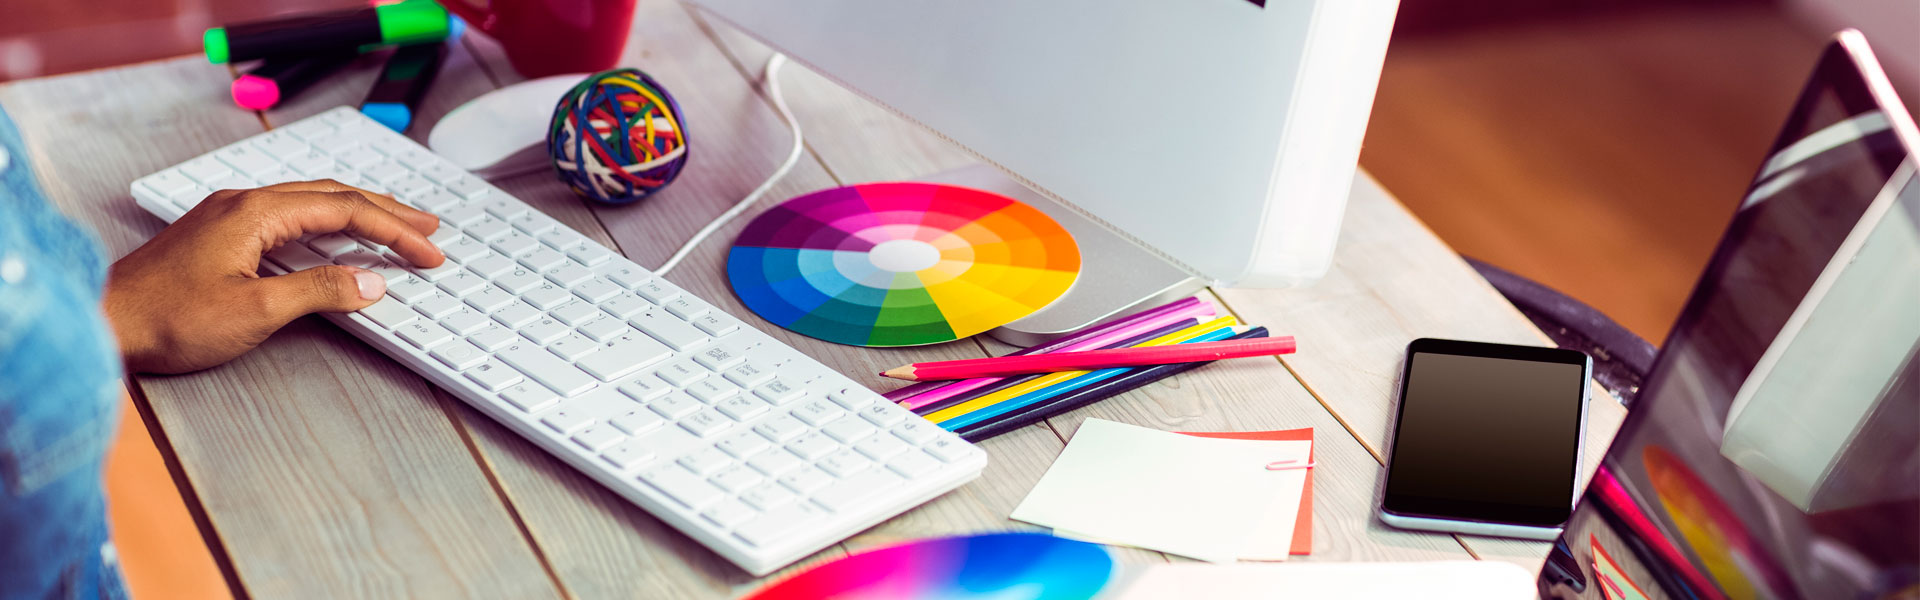 Printdesign mit Adobe Creative Cloud - Weiterbildung in Leipzig